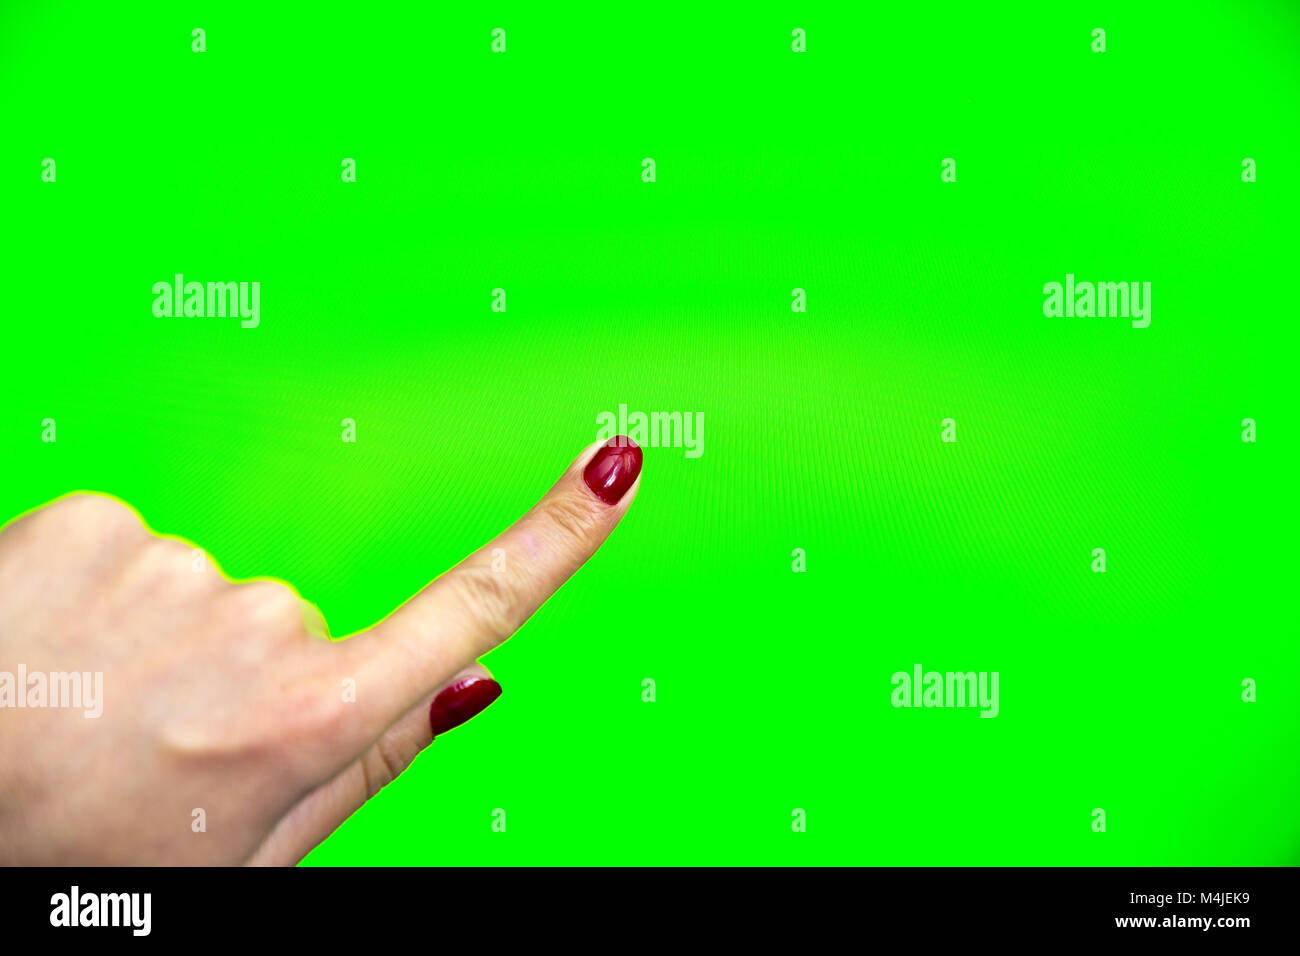 Computer monitor green screen woman hand - Stock Image